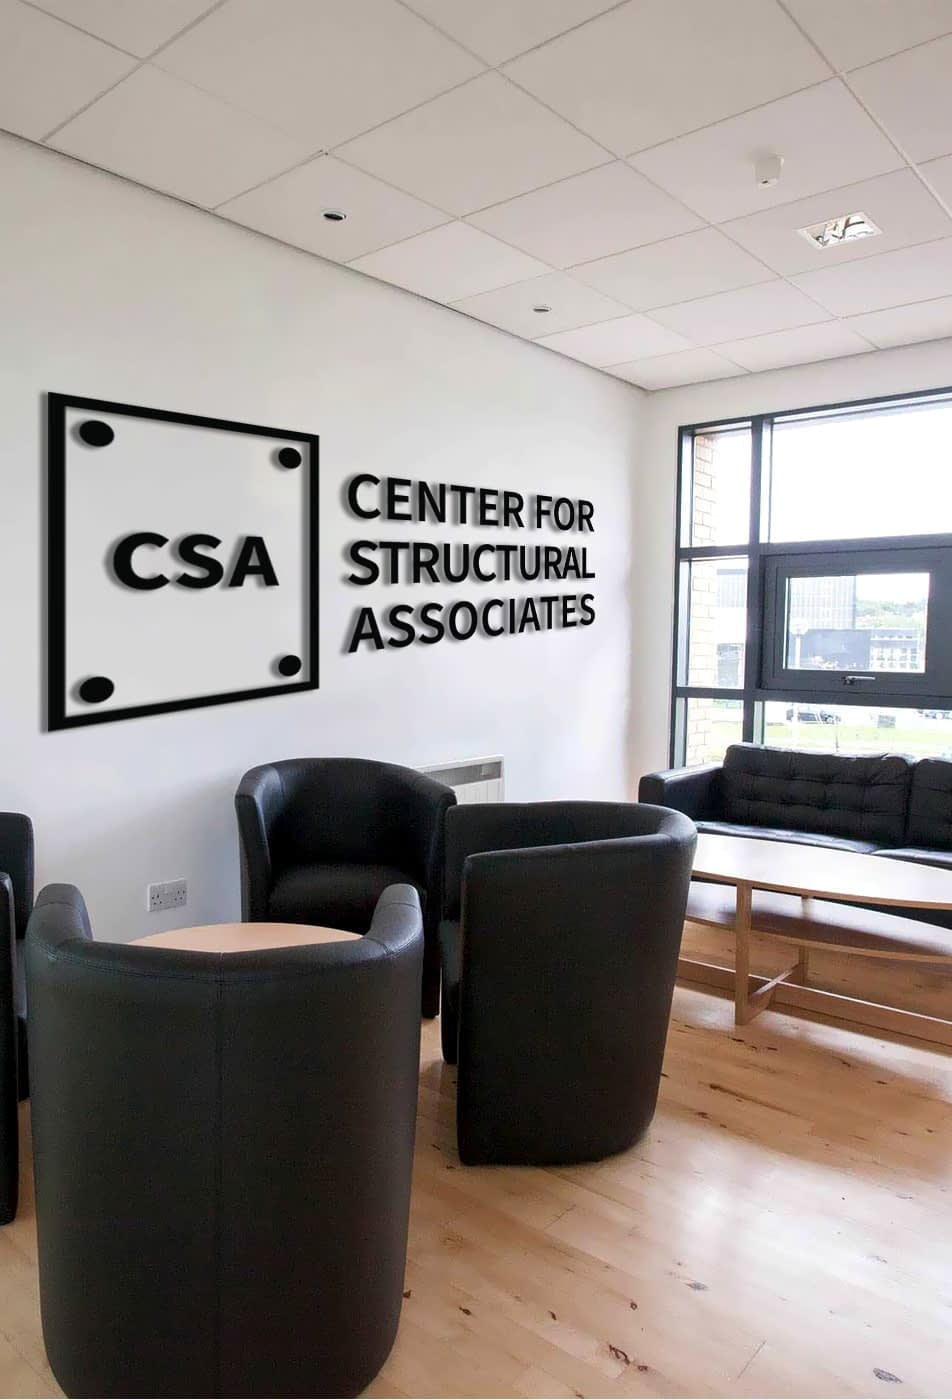 CSA_about us_1